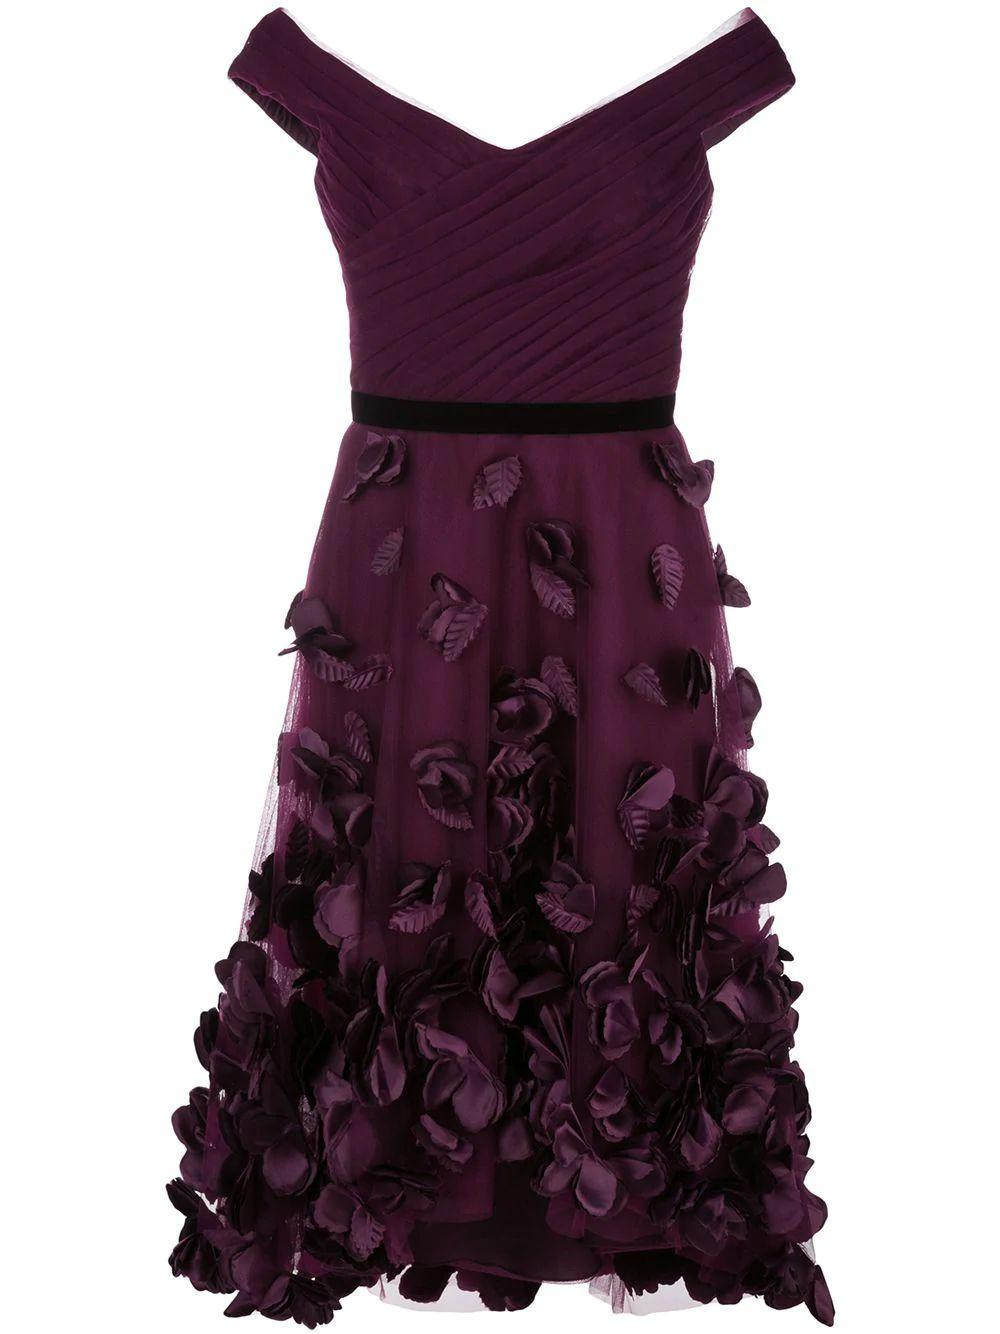 Strapless High Low Cocktail Dress With 3d Flowers Item # N34C1034